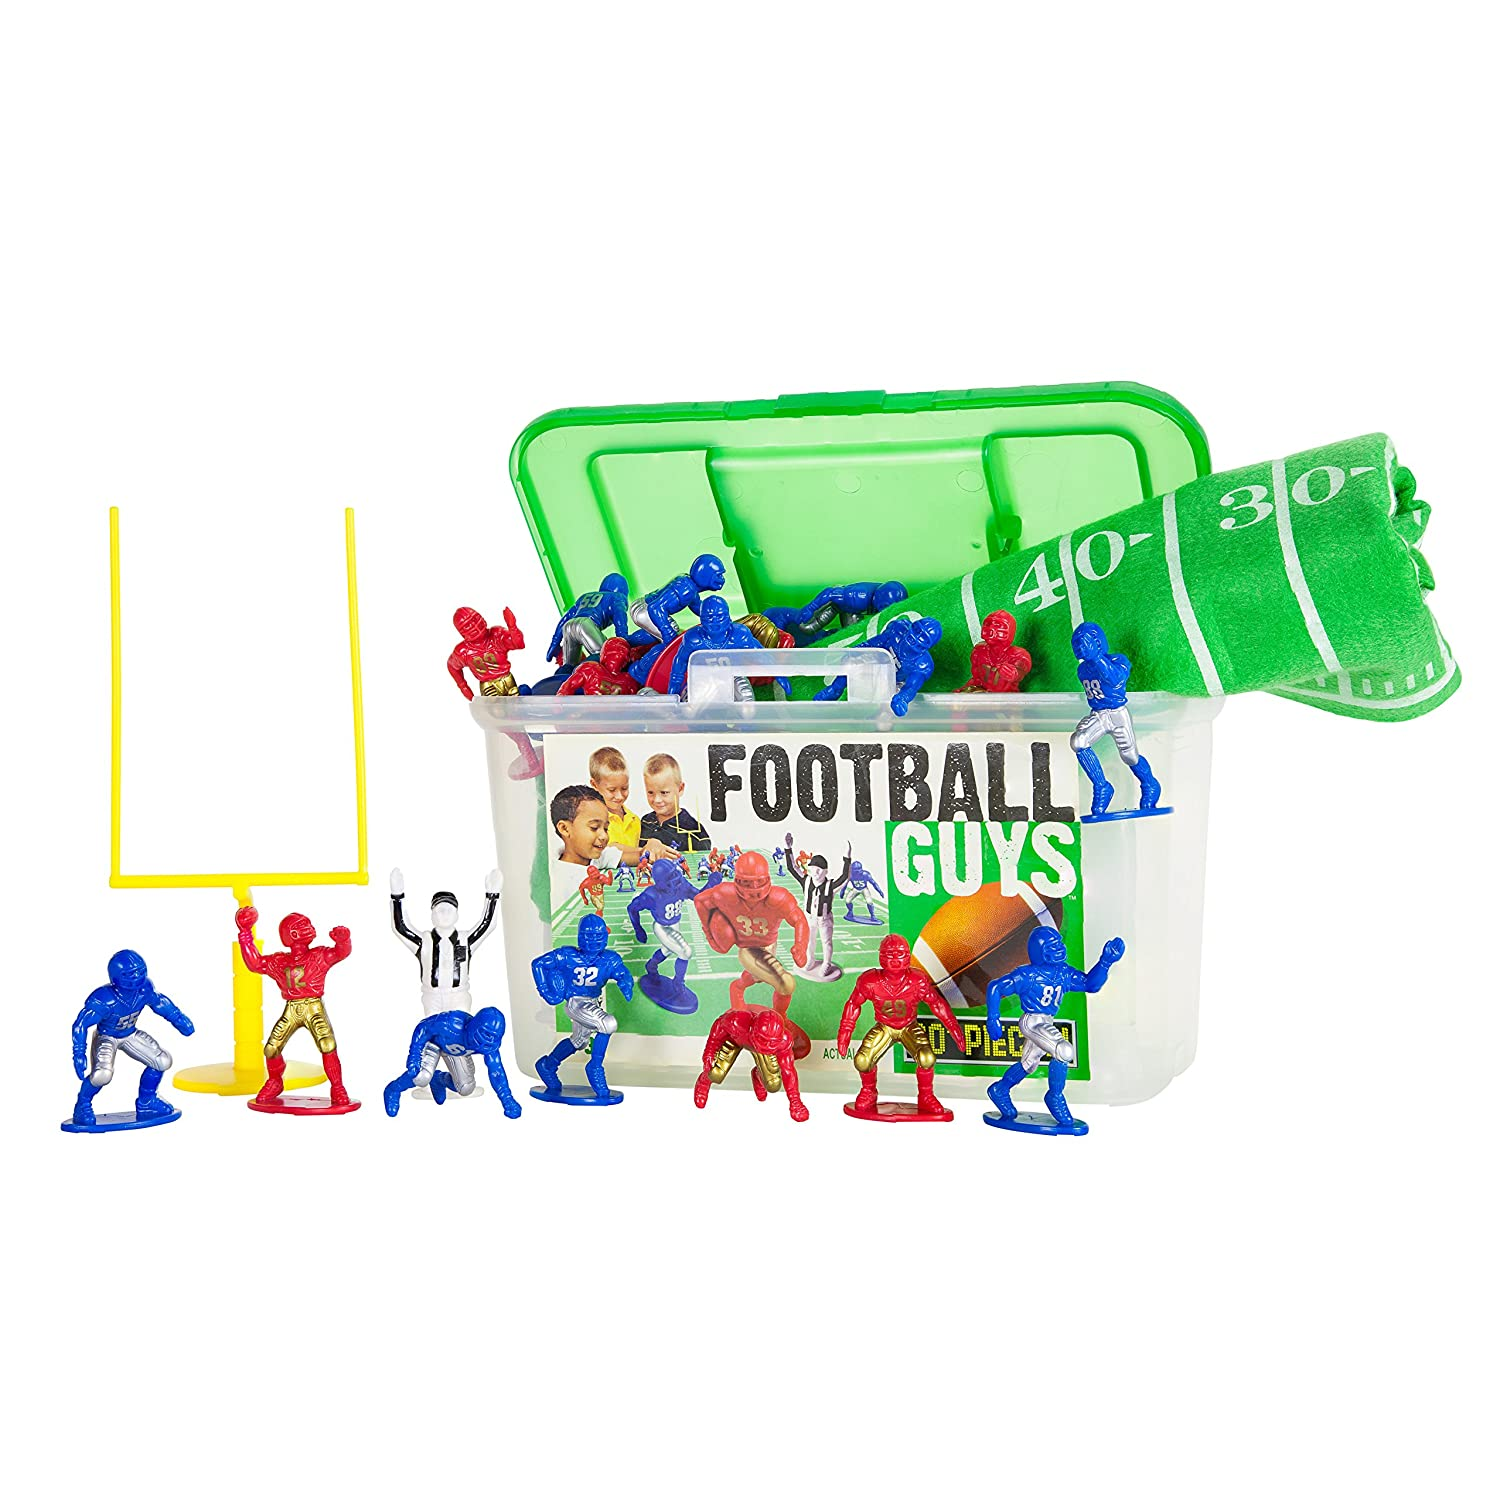 Kaskey Kids Football Guys: Red vs. BlueInspires Imagination with Open-Ended PlayIncludes 2 Full Teams and MoreFor Ages 3 and Up